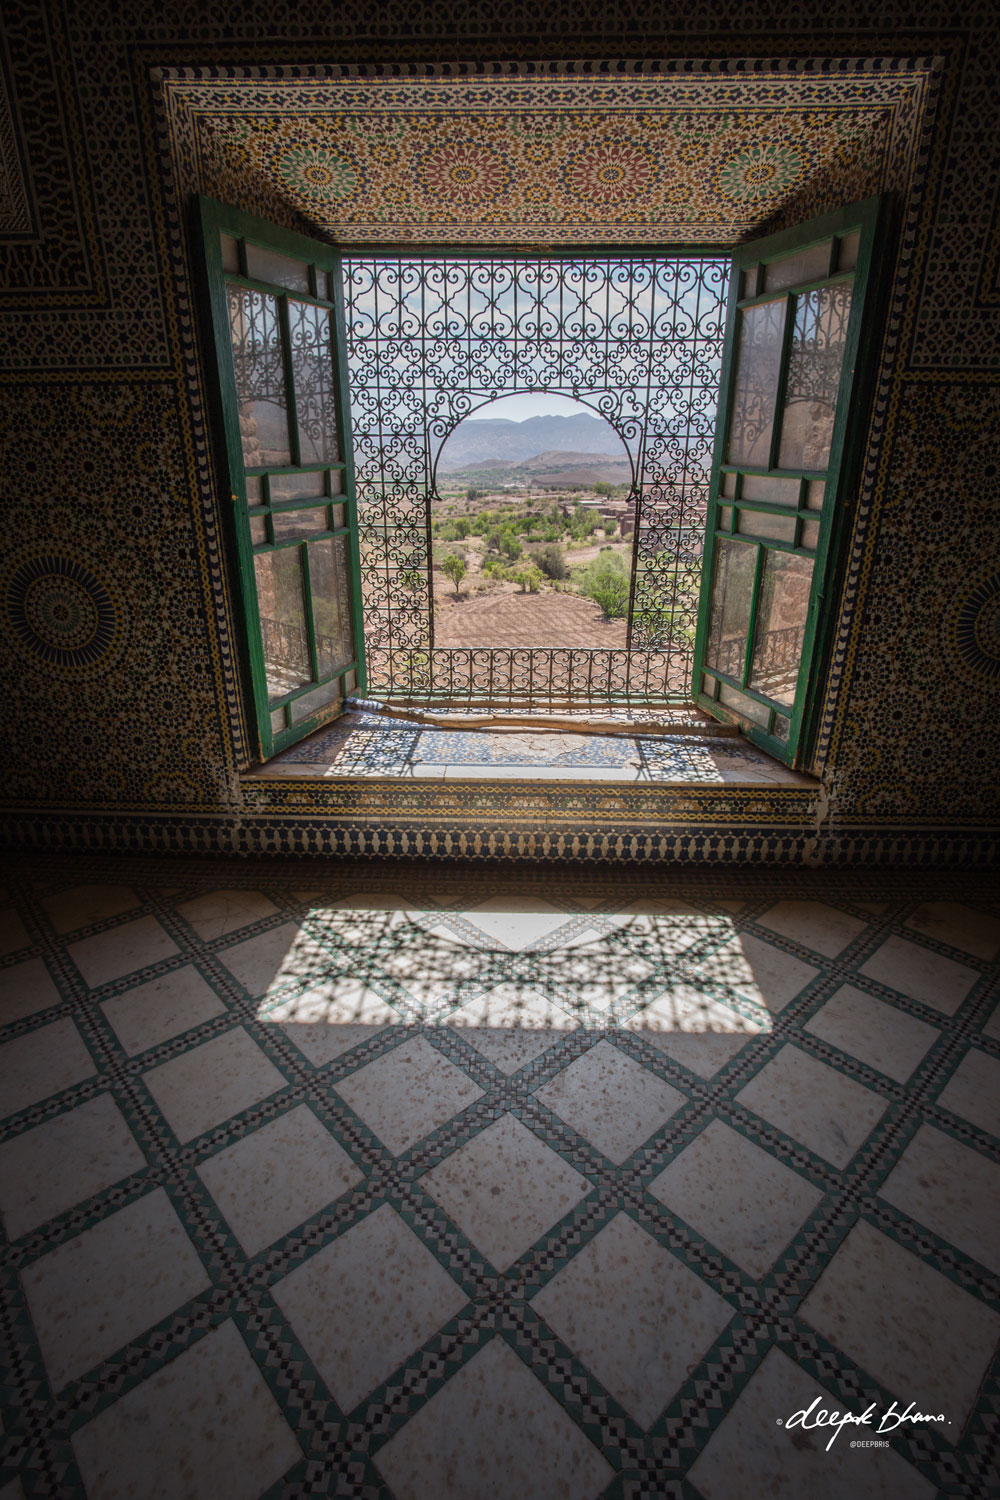 the-Telouet-Kasbah-Morocco-inside-tiles-desgns-window-view